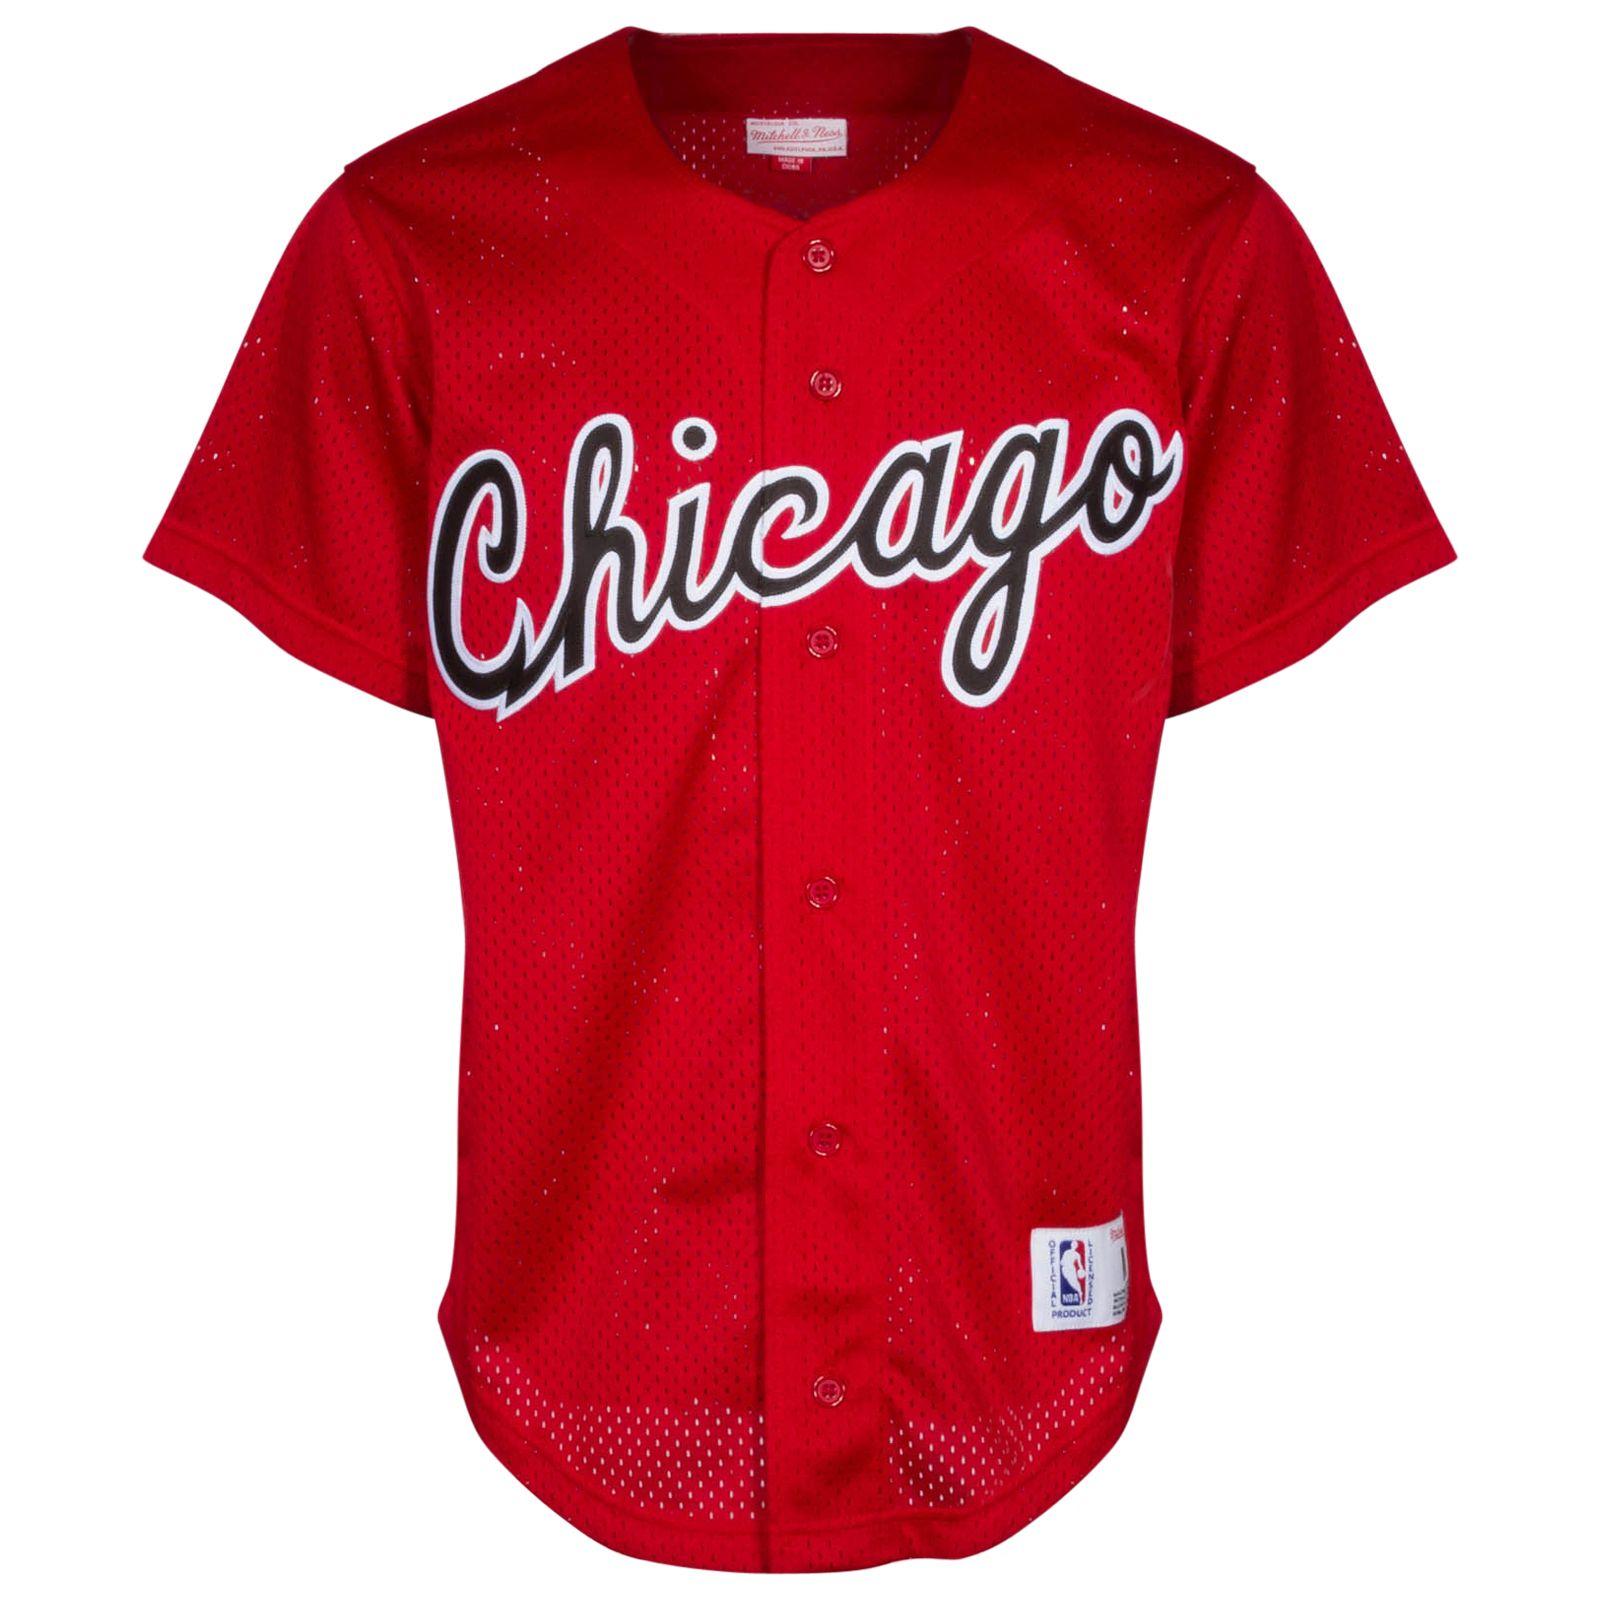 e57ac46d Chicago Bulls Men's Red Button-Up Baseball Jersey by Mitchell & Ness # Chicago #Bulls #ChicagoBulls